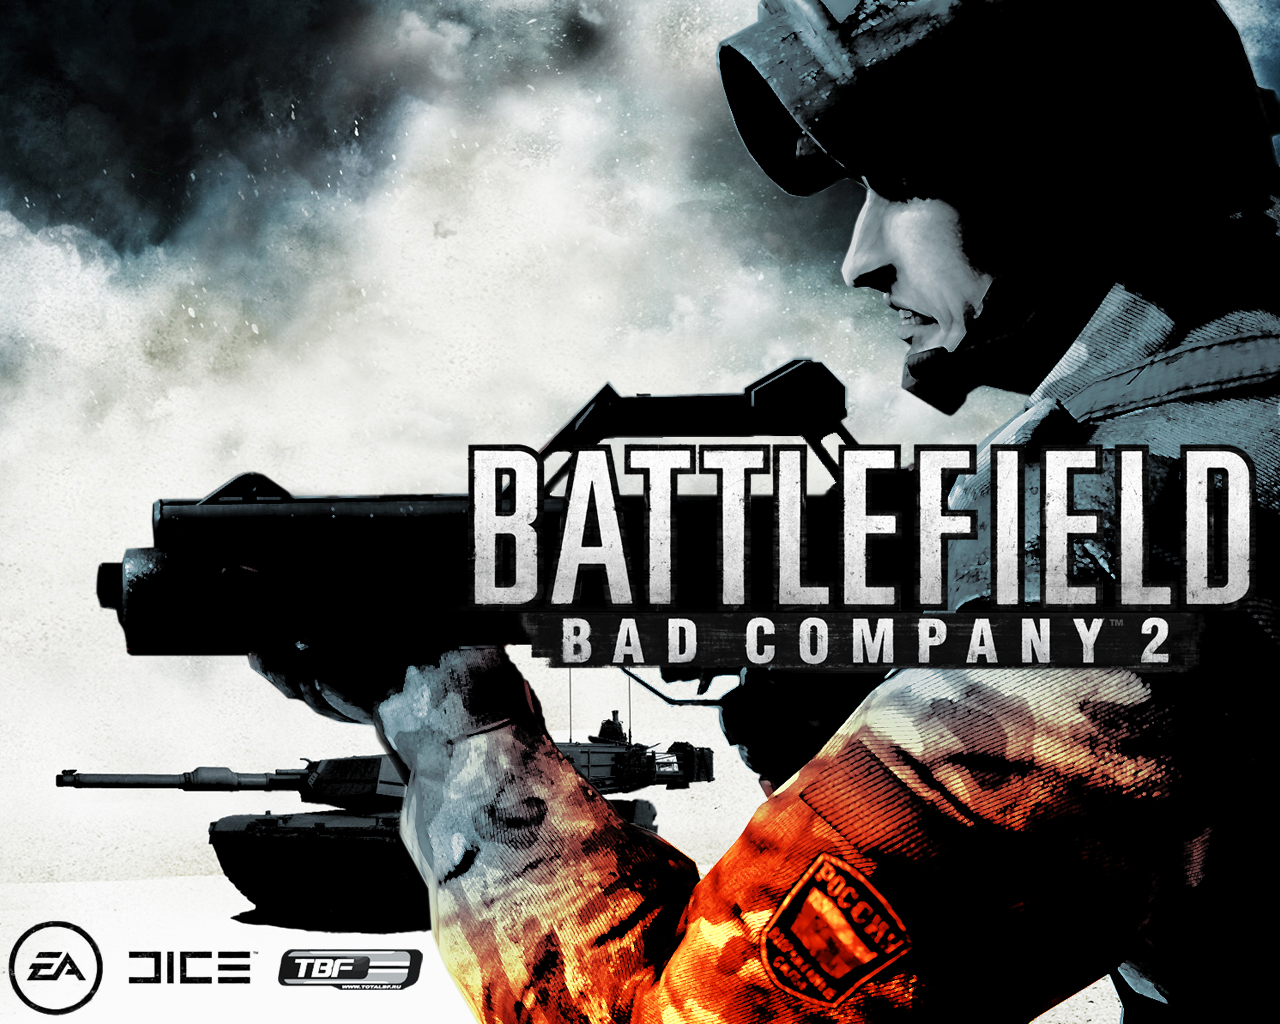 Battlefield bad company wallpaper - photo#12